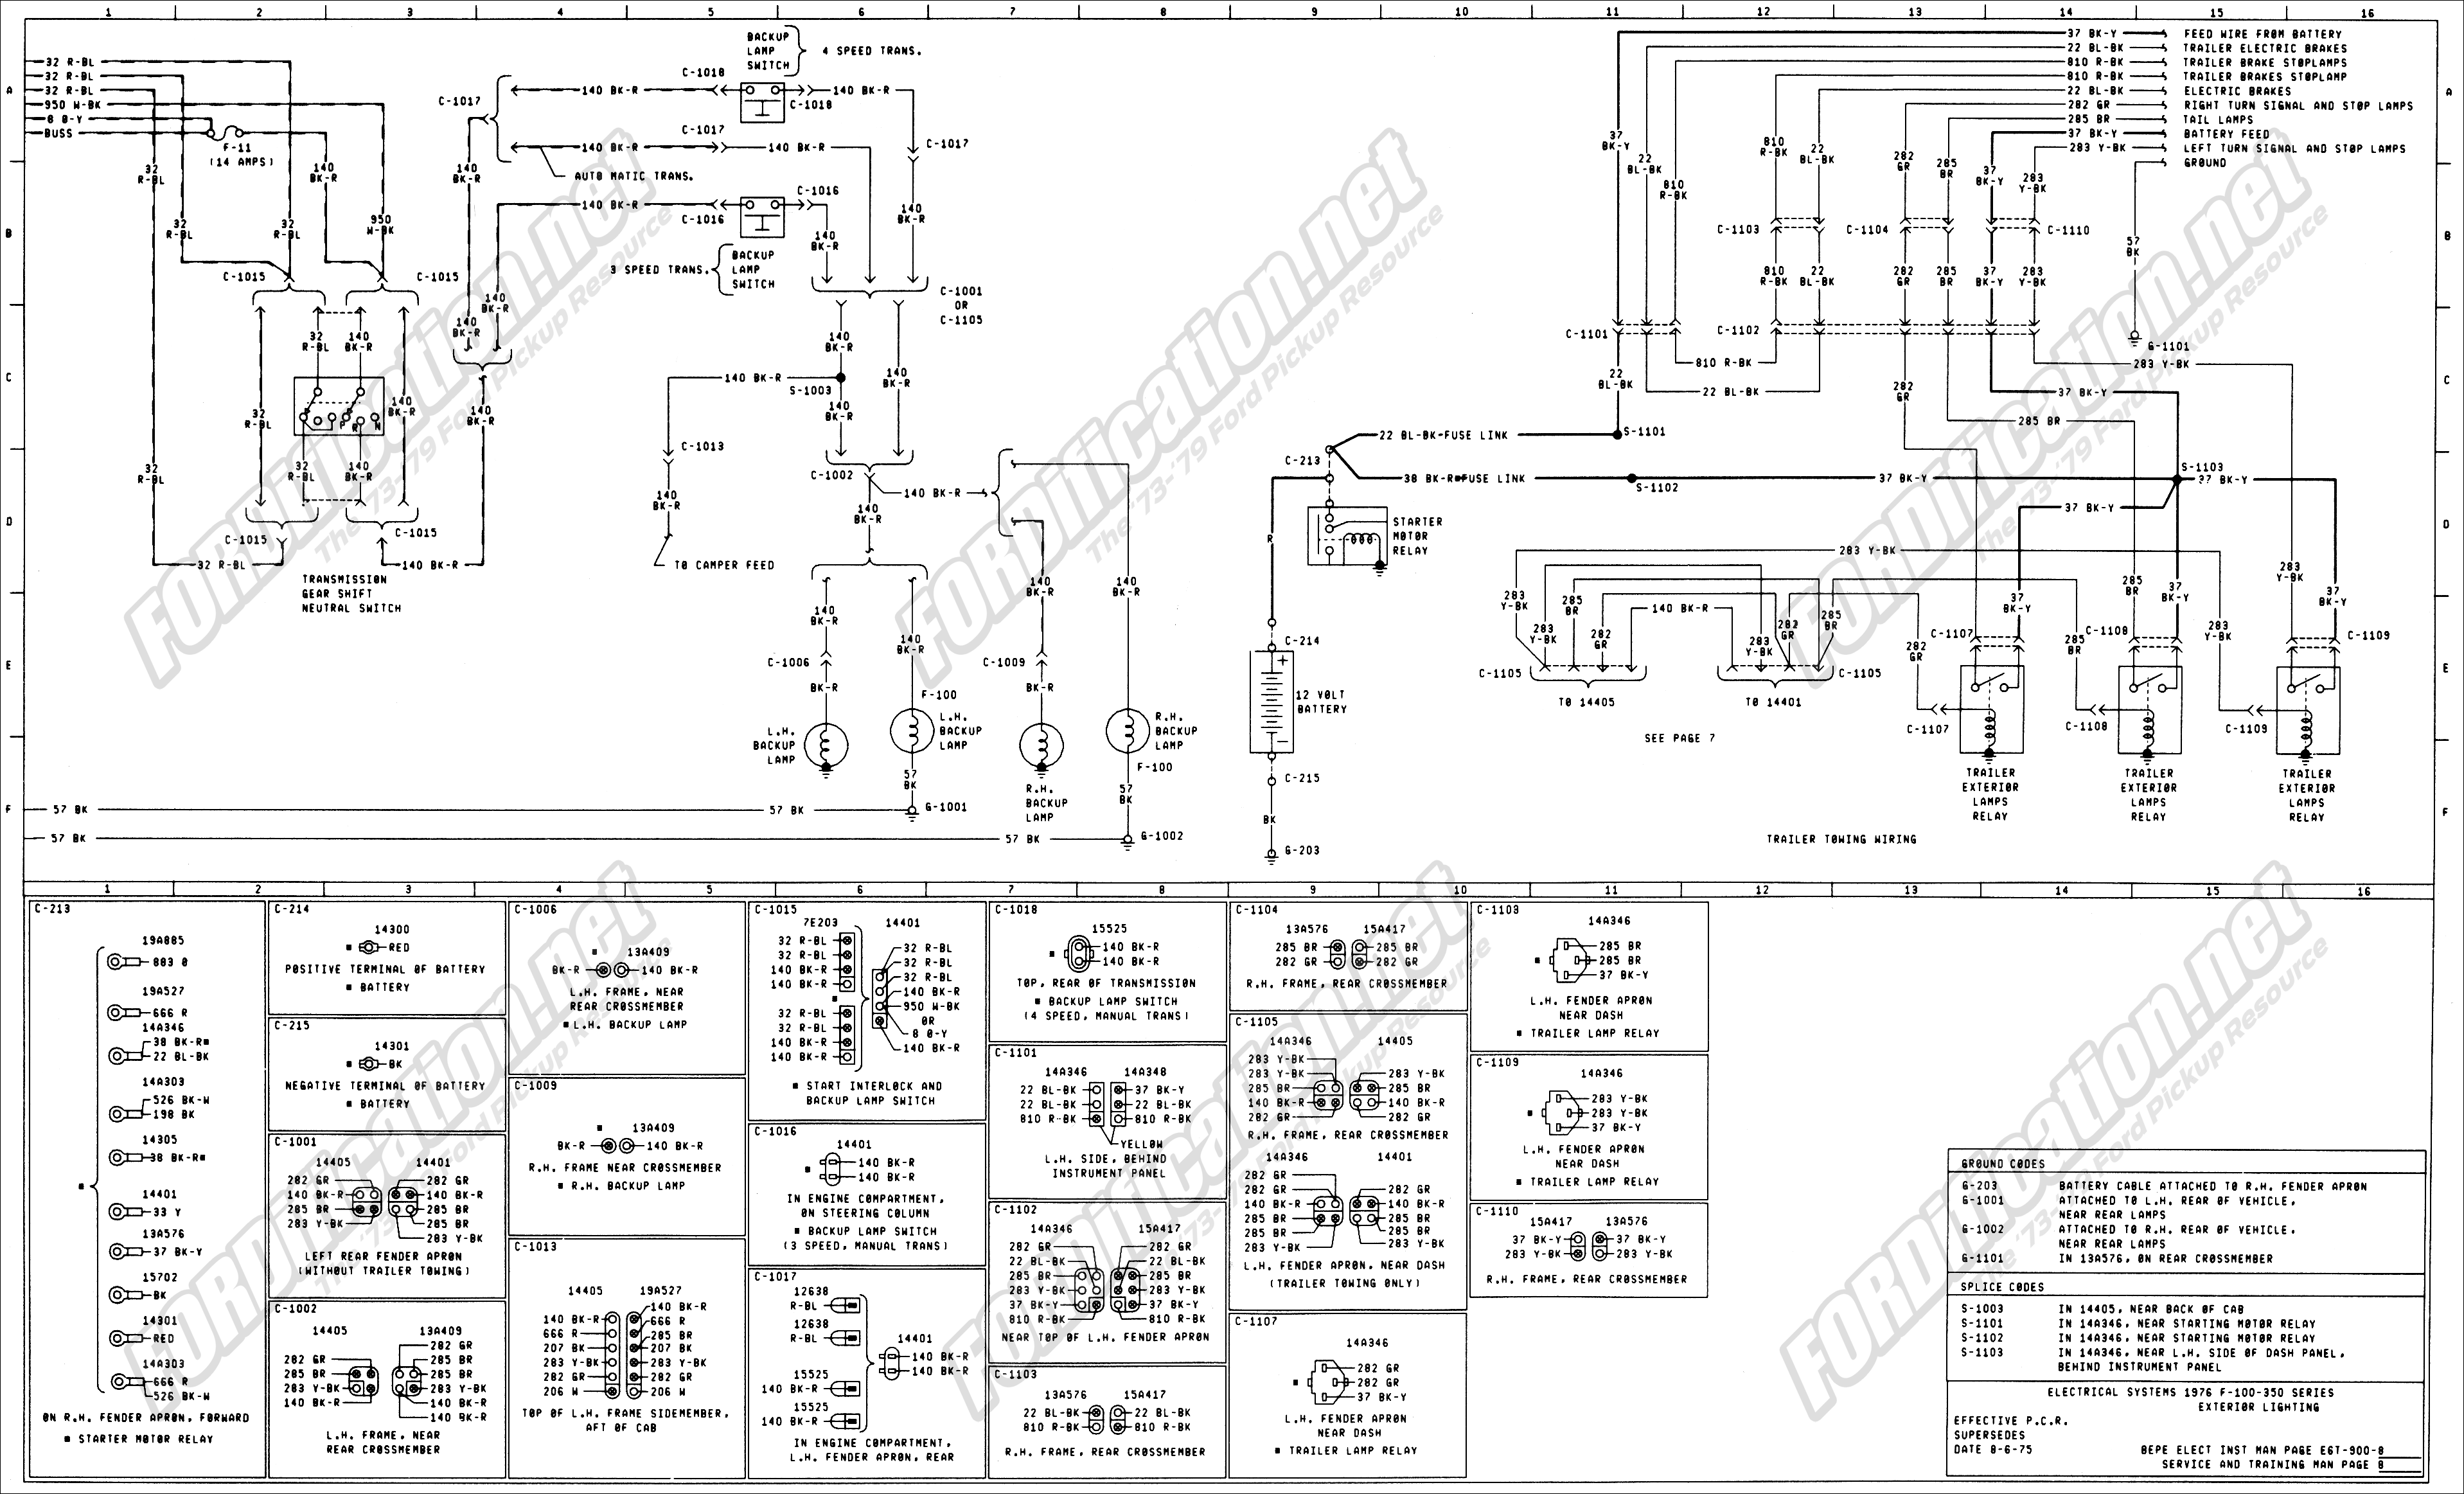 Ford Wiring Schematic Lights on 1979 ford axles, 1979 ford interior, 1979 ford parts, 1979 ford headlights, 1979 ford drawings, 1979 ford suspension, 1979 ford engine,